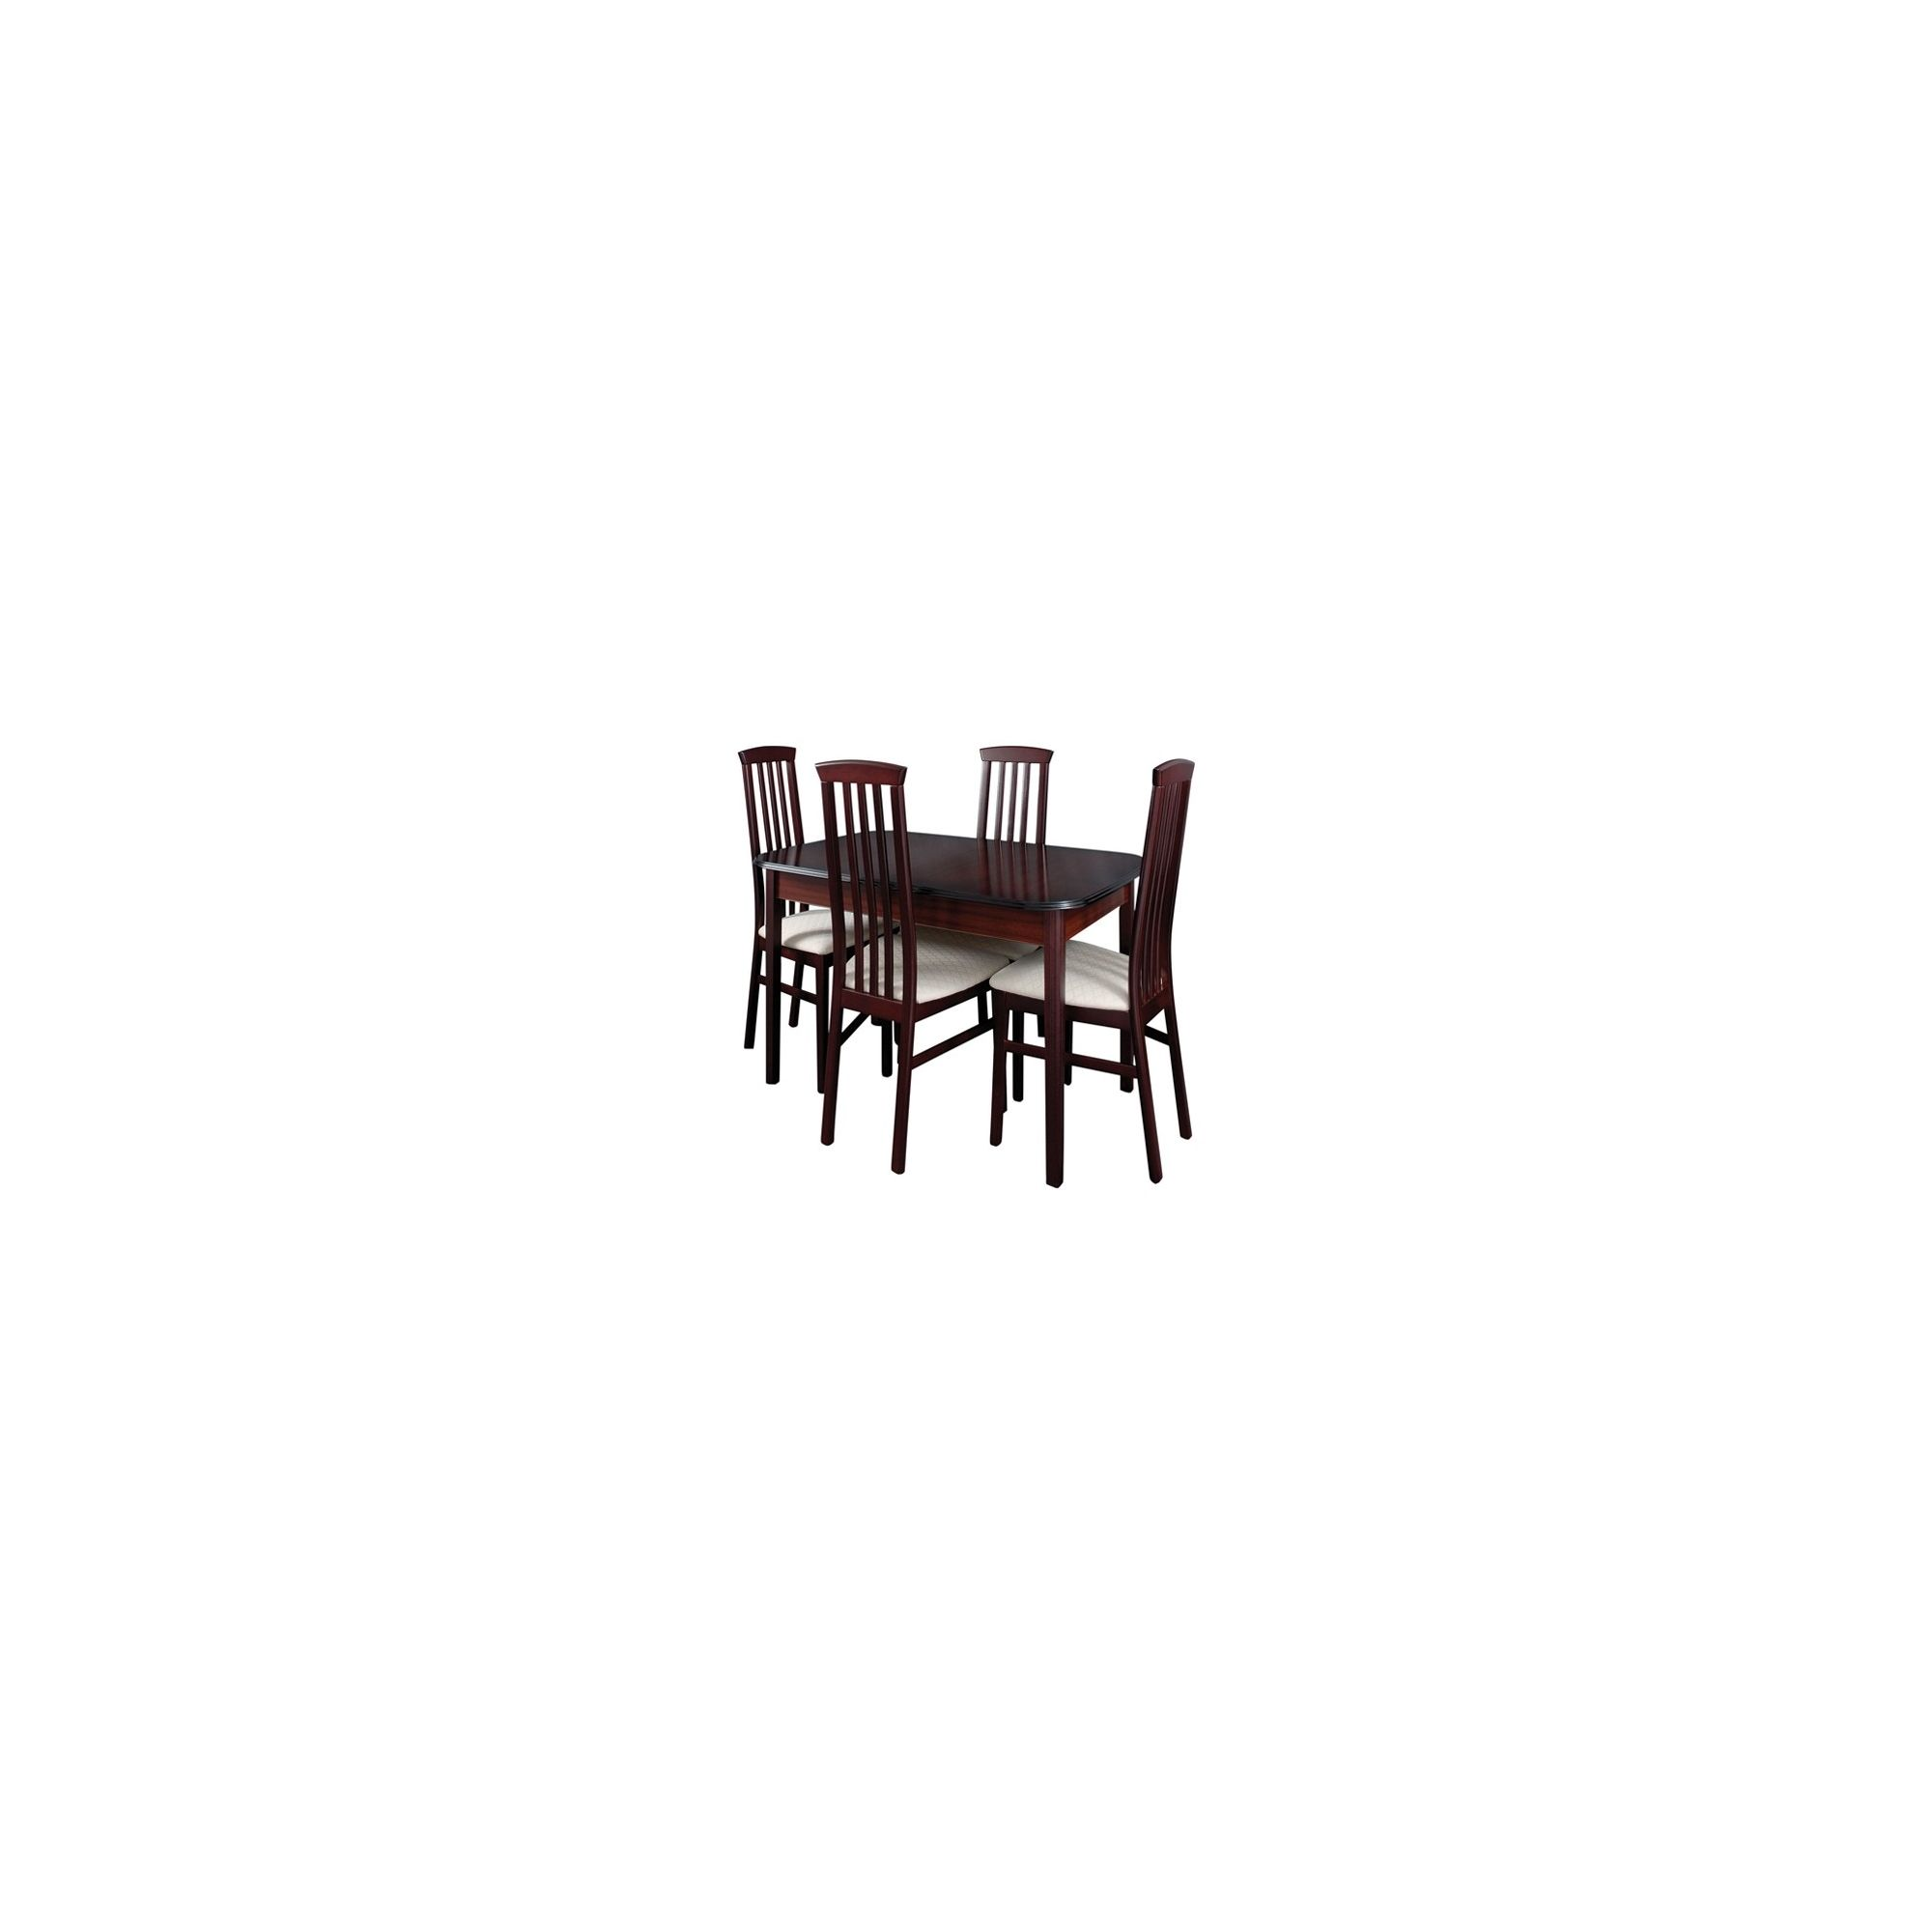 Caxton York Compact Rectangular 4 Chair Extending Dining Set in Mahogany at Tesco Direct